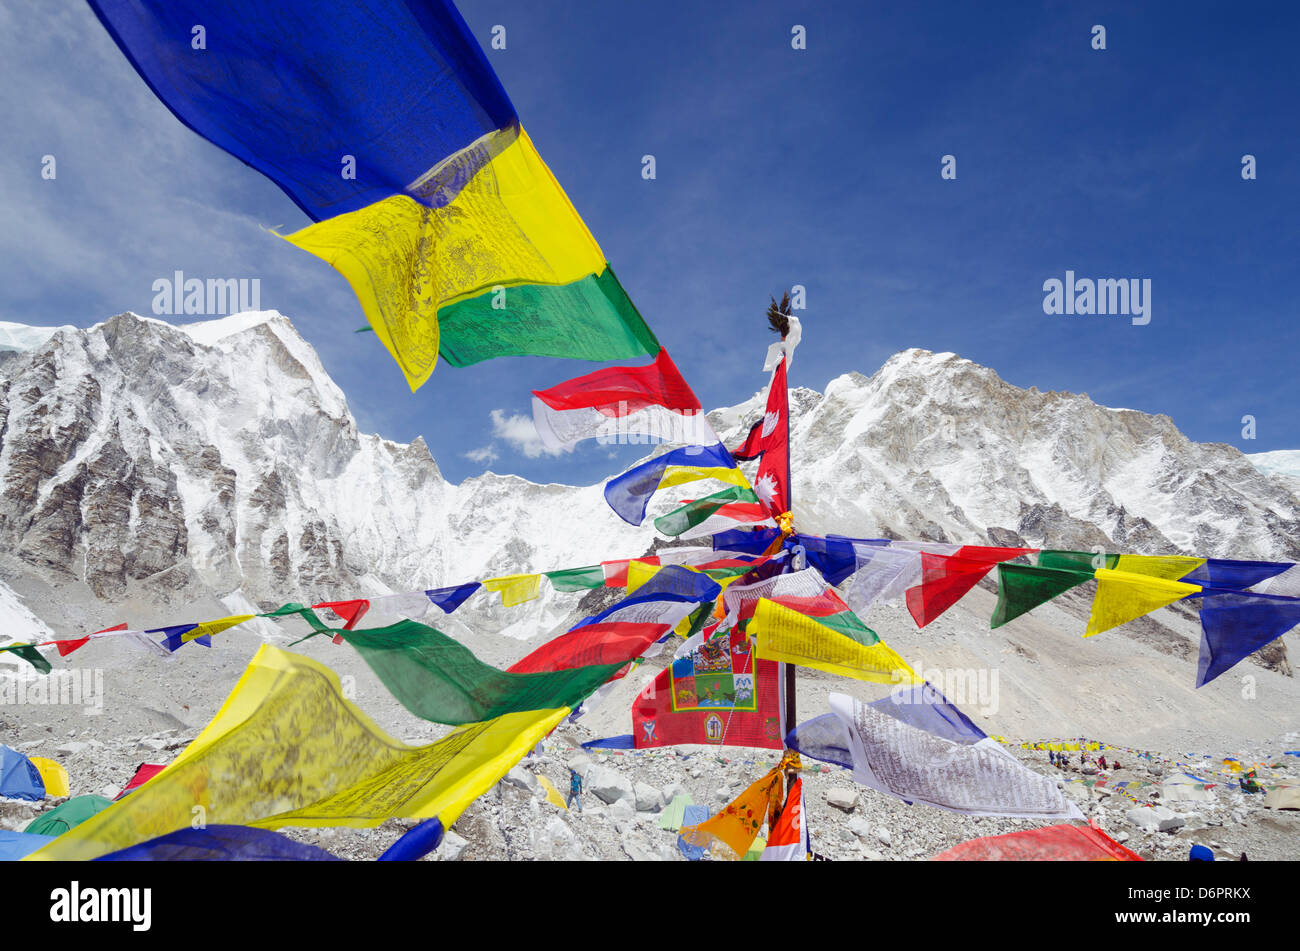 Asia, Nepal, Himalayas, Sagarmatha National Park, Solu Khumbu Everest Region, Unesco Site, prayer flags at Everest - Stock Image